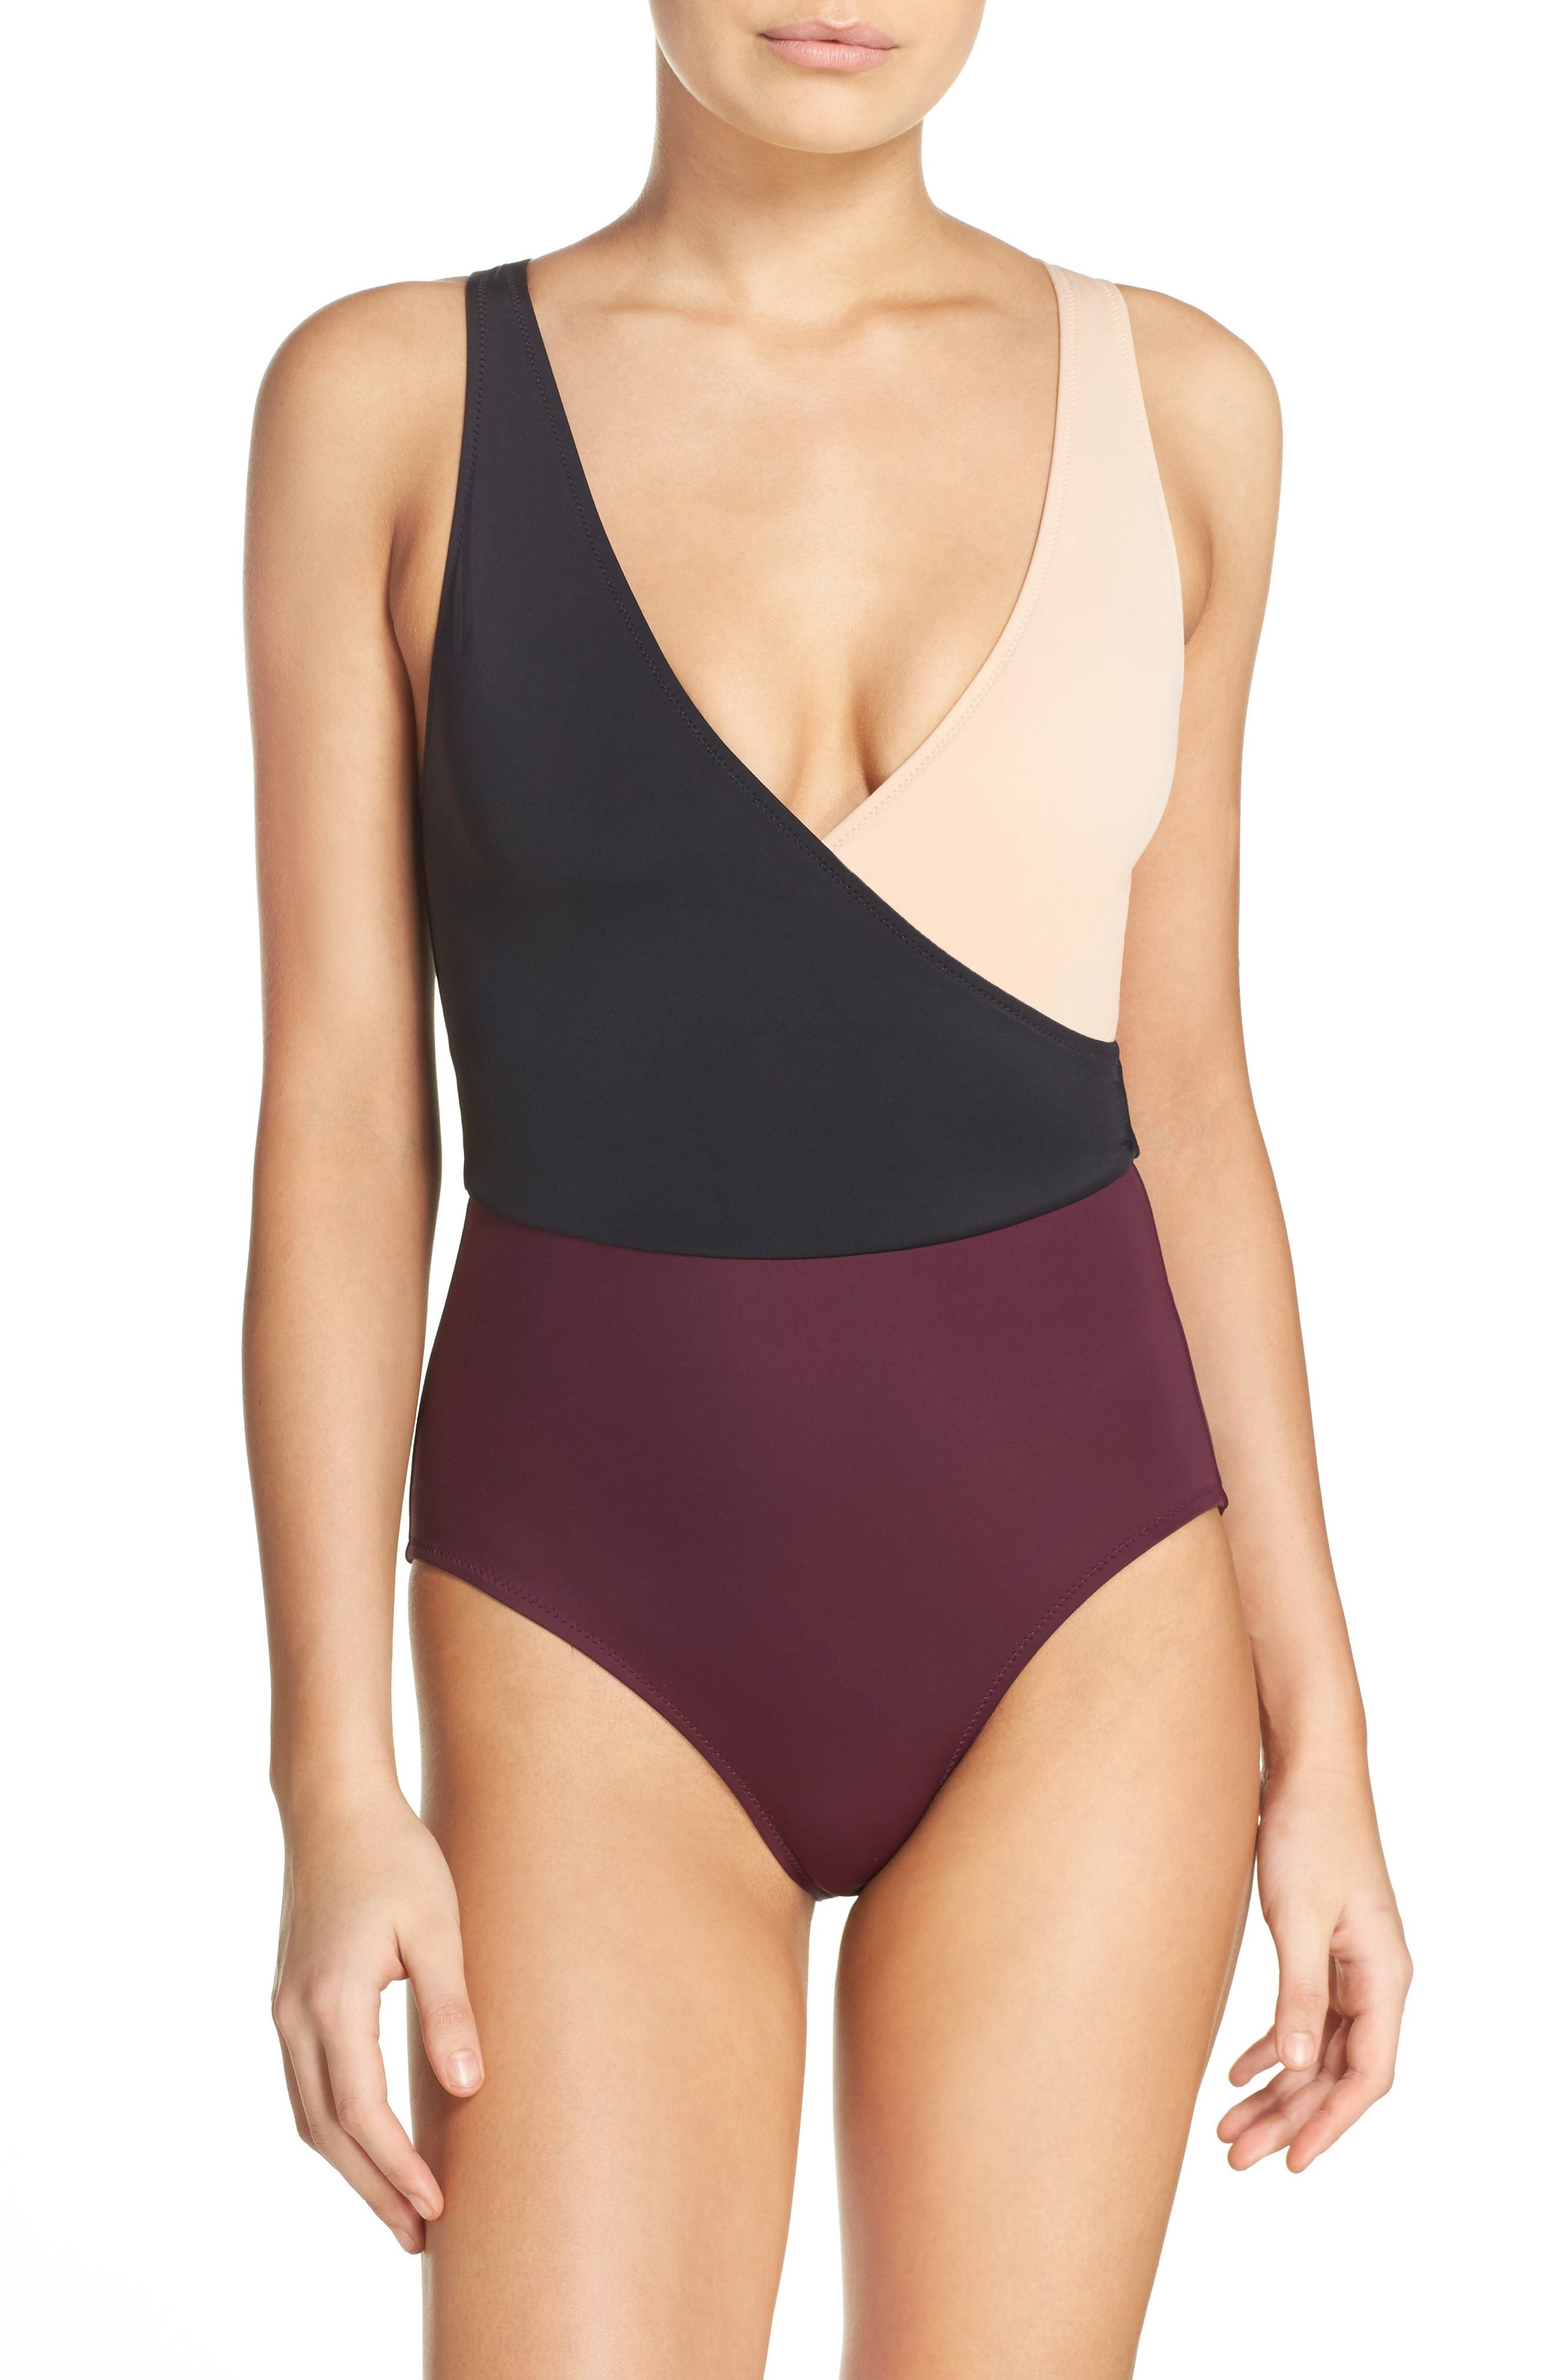 Alternate Image 1 Selected - Solid & Striped Ballerina One-Piece Swimsuit